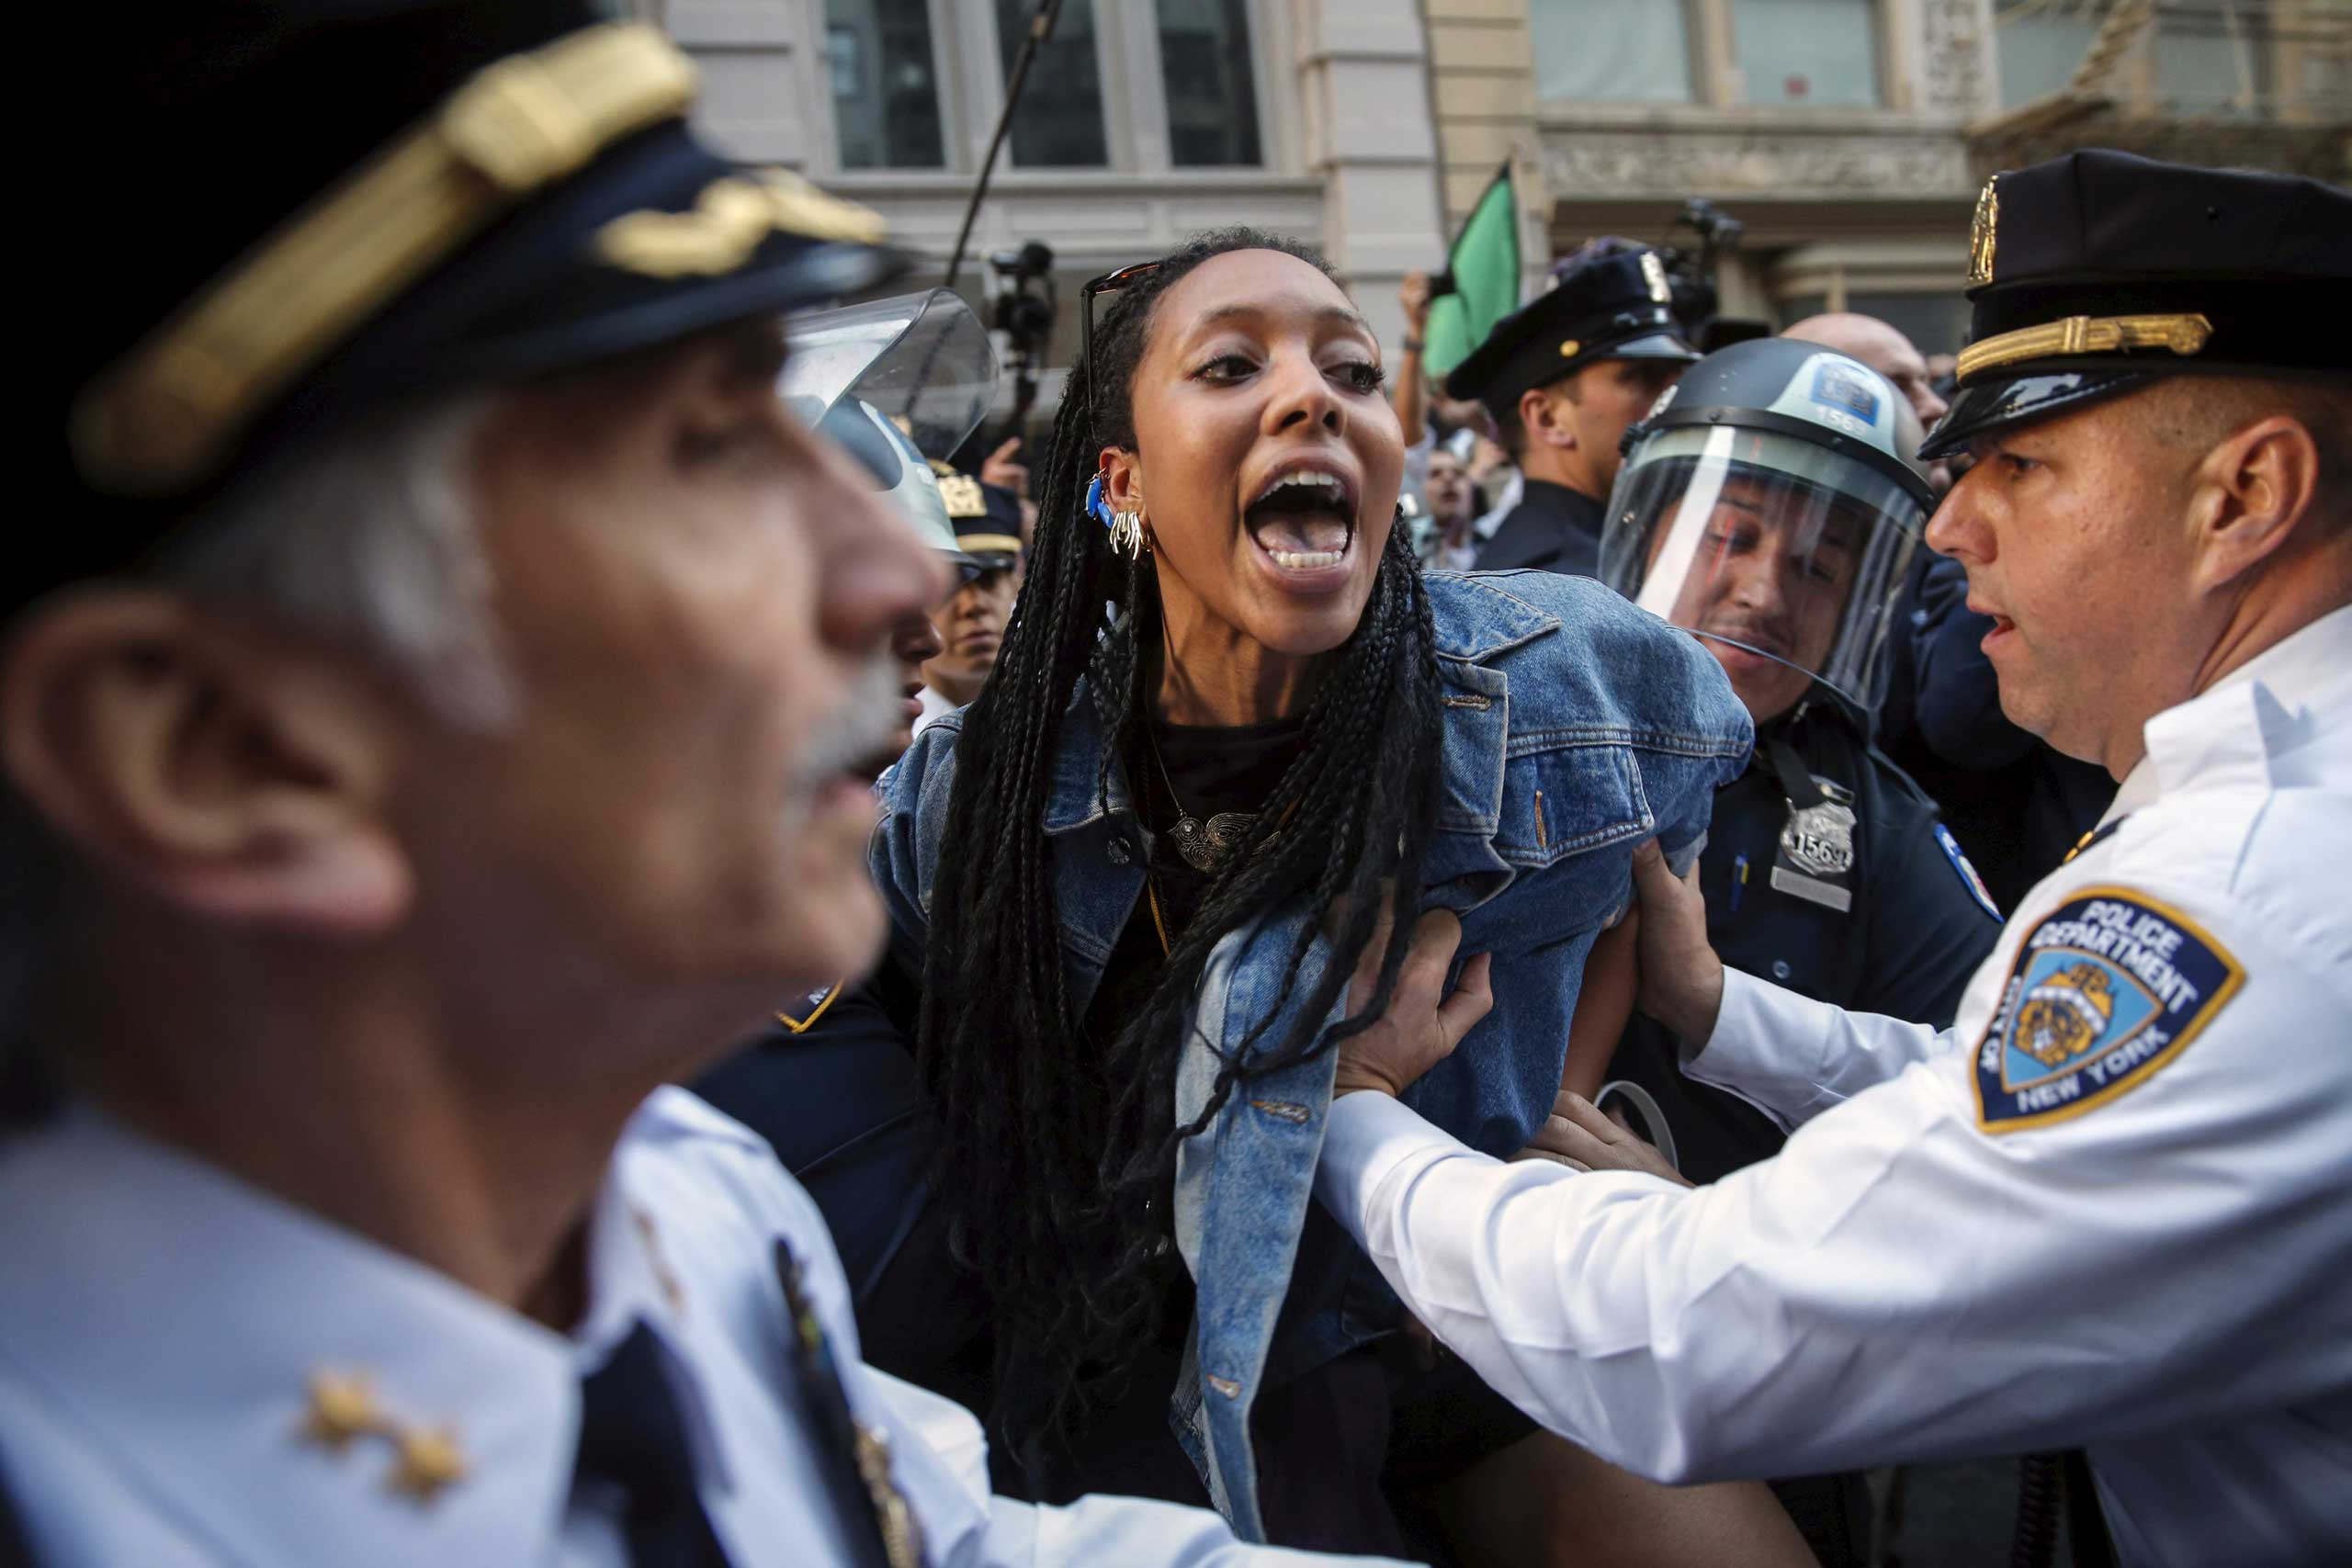 New York Police Department officers detain a protester during a march through the Manhattan borough of New York City on April 29, 2015.